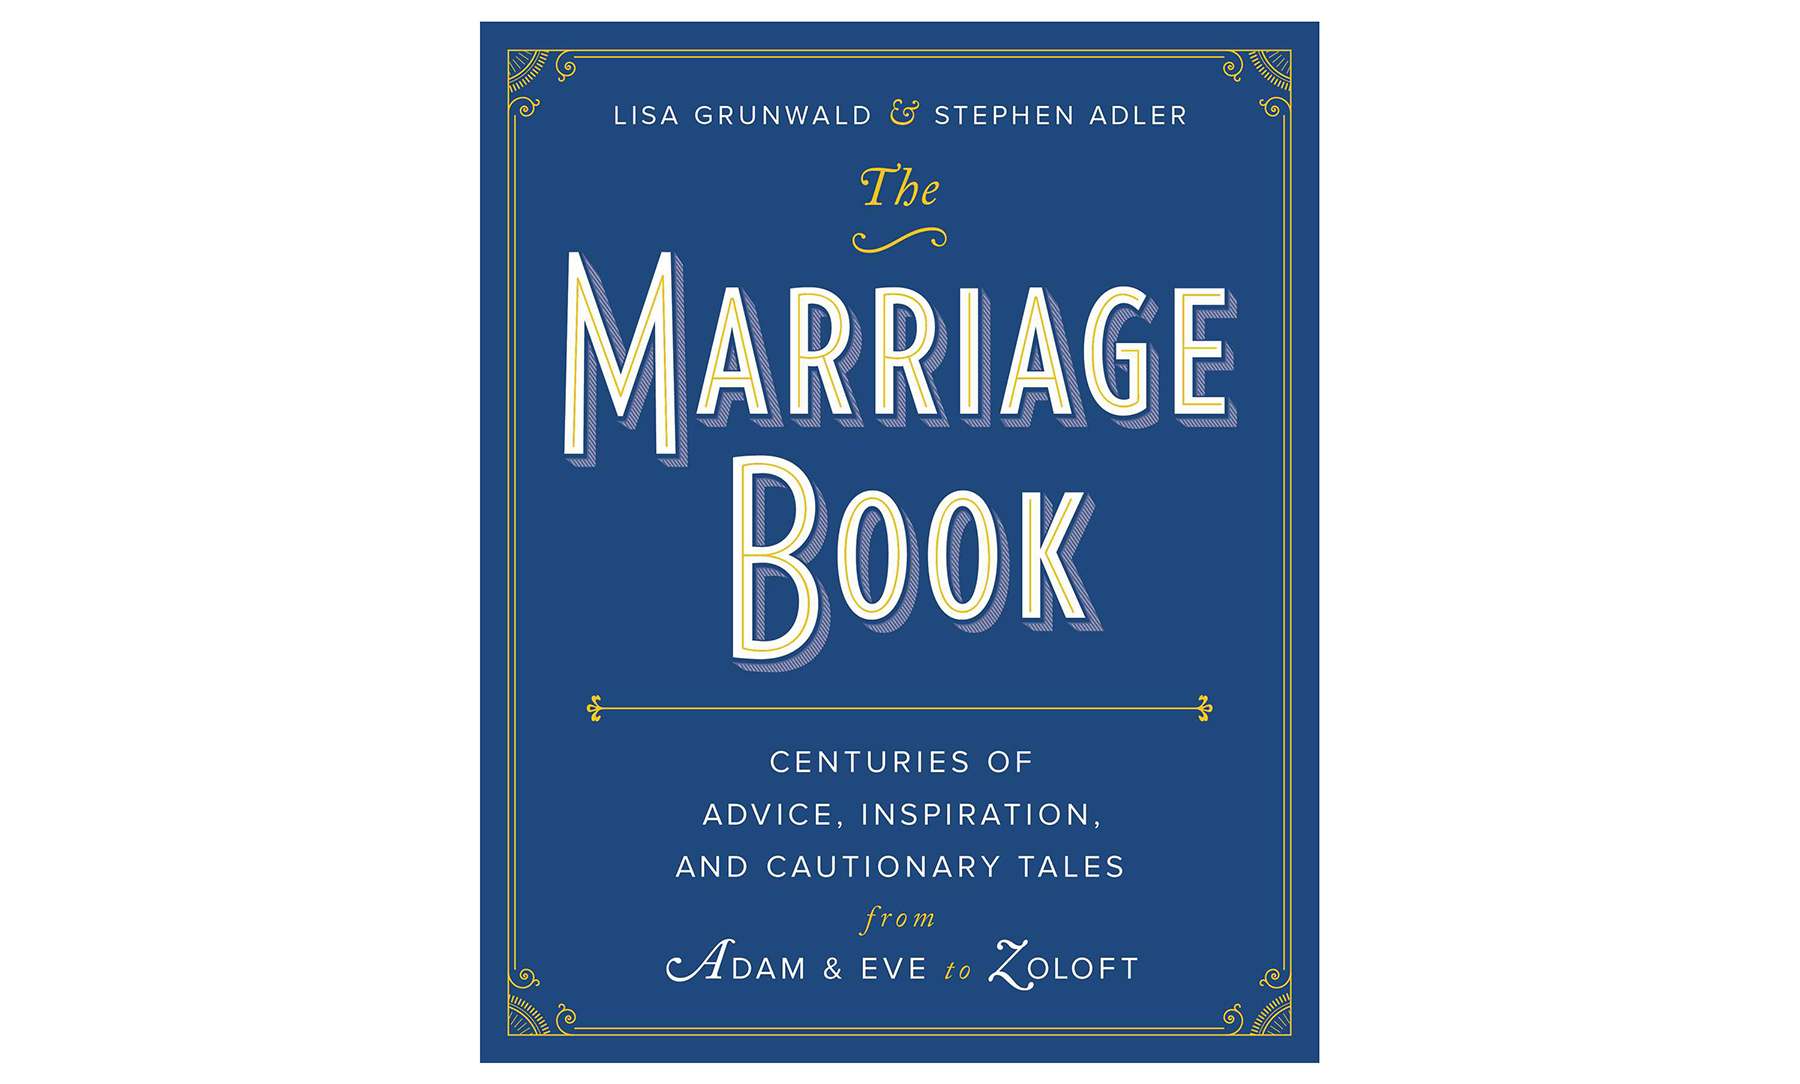 The Marriage Book, by Lisa Grunwald and Stephen Adler